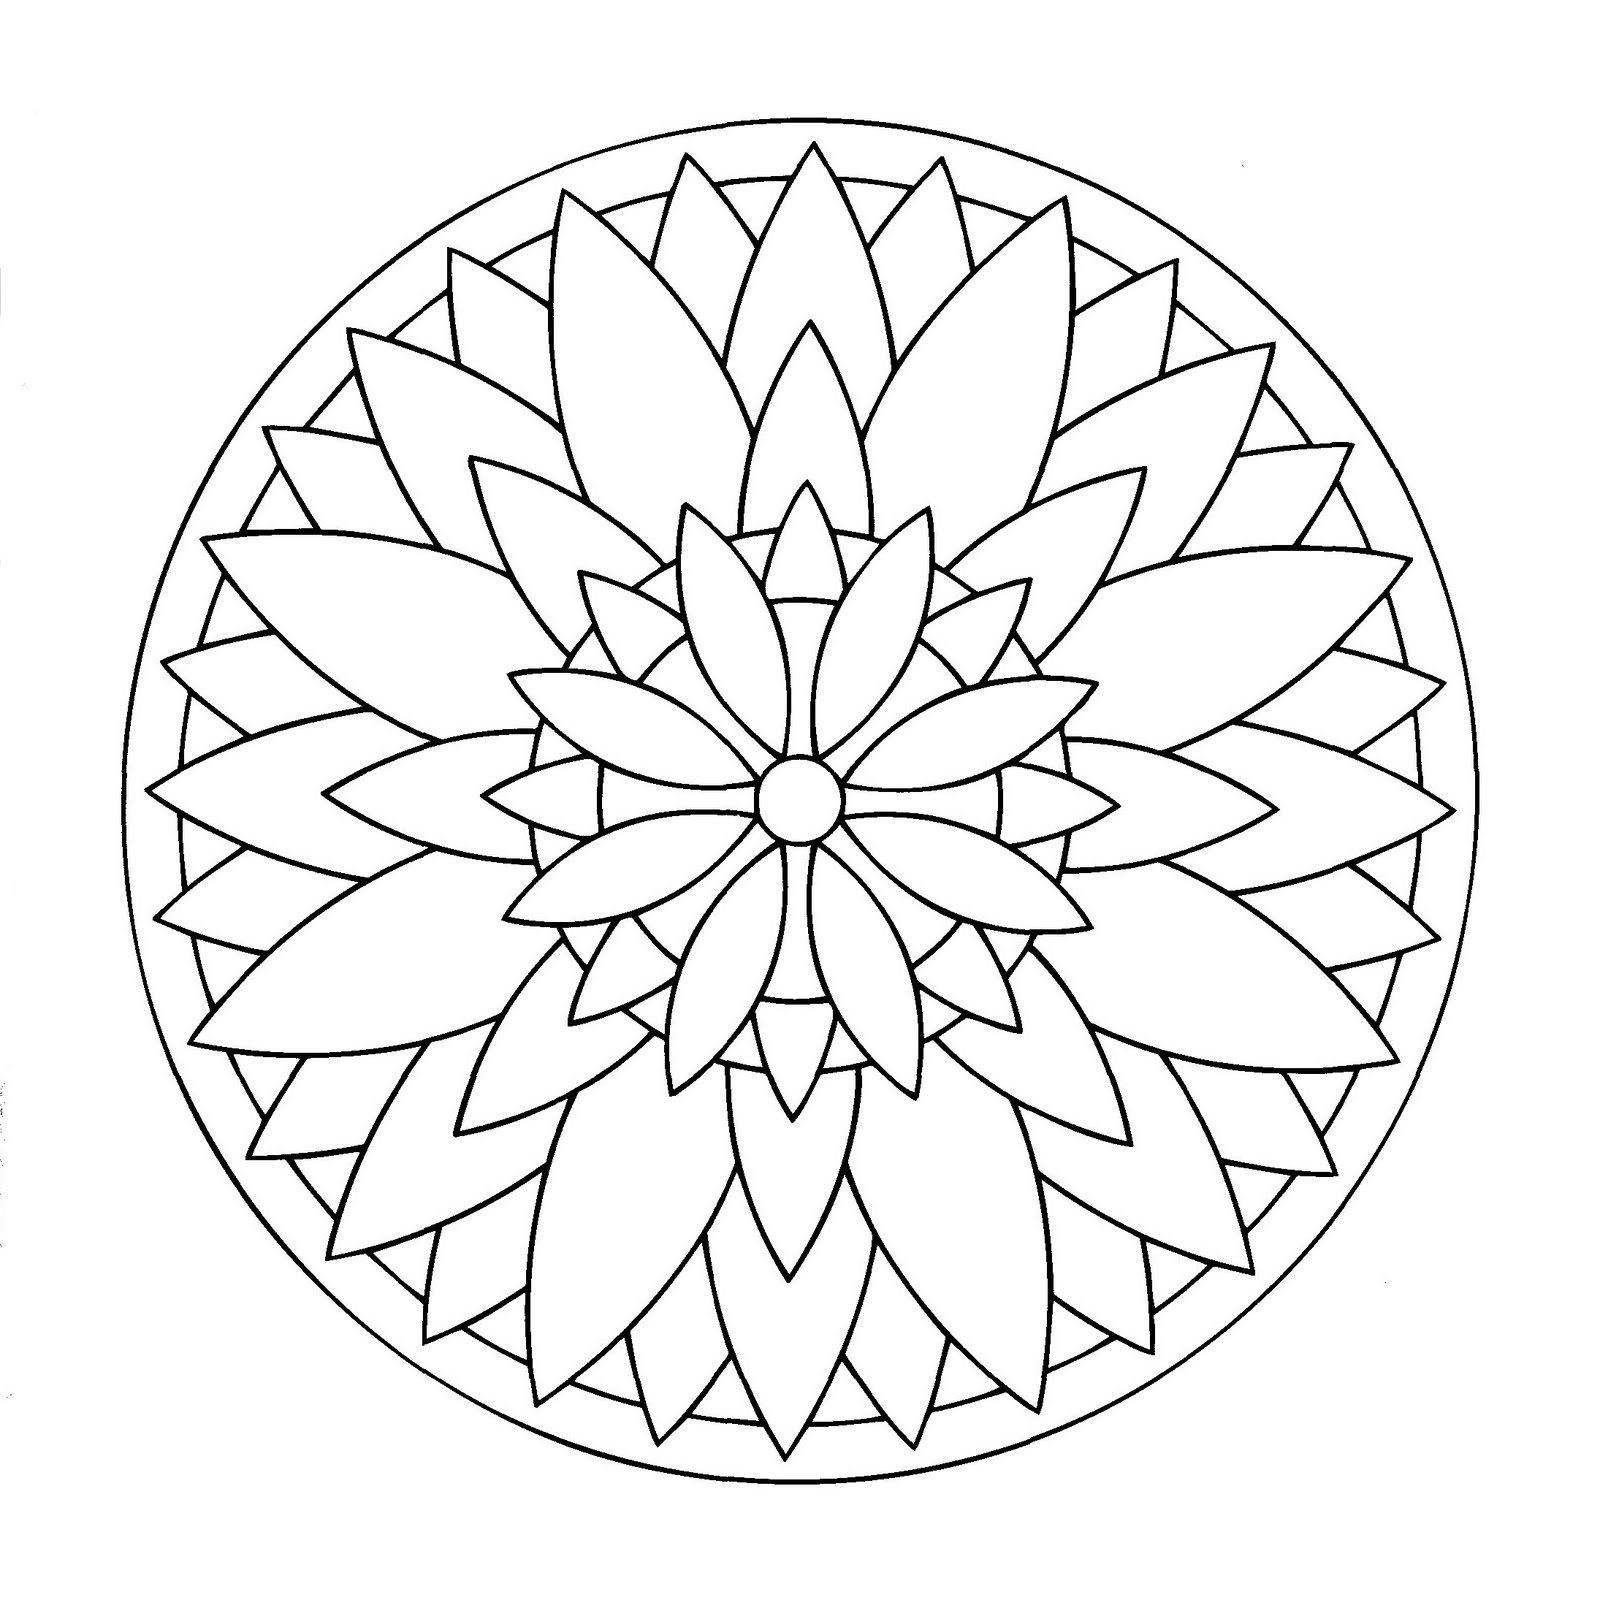 Mandala to color easy children 17 - Easy Mandalas for kids - 100 ...